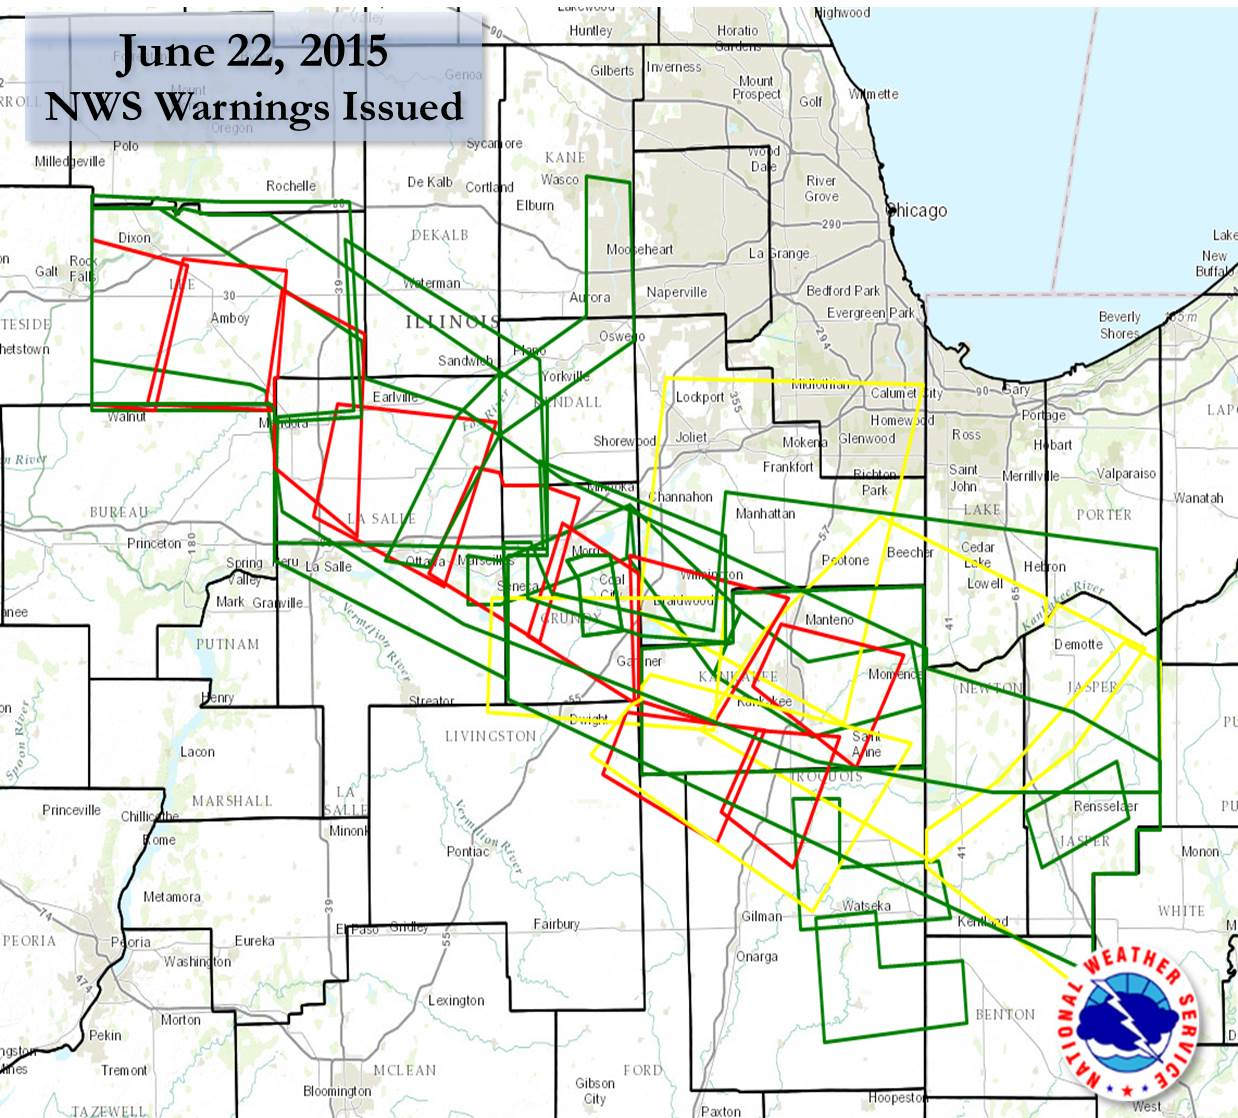 Summary of Warnings Issued from NWS Chicago on June 22nd 2015